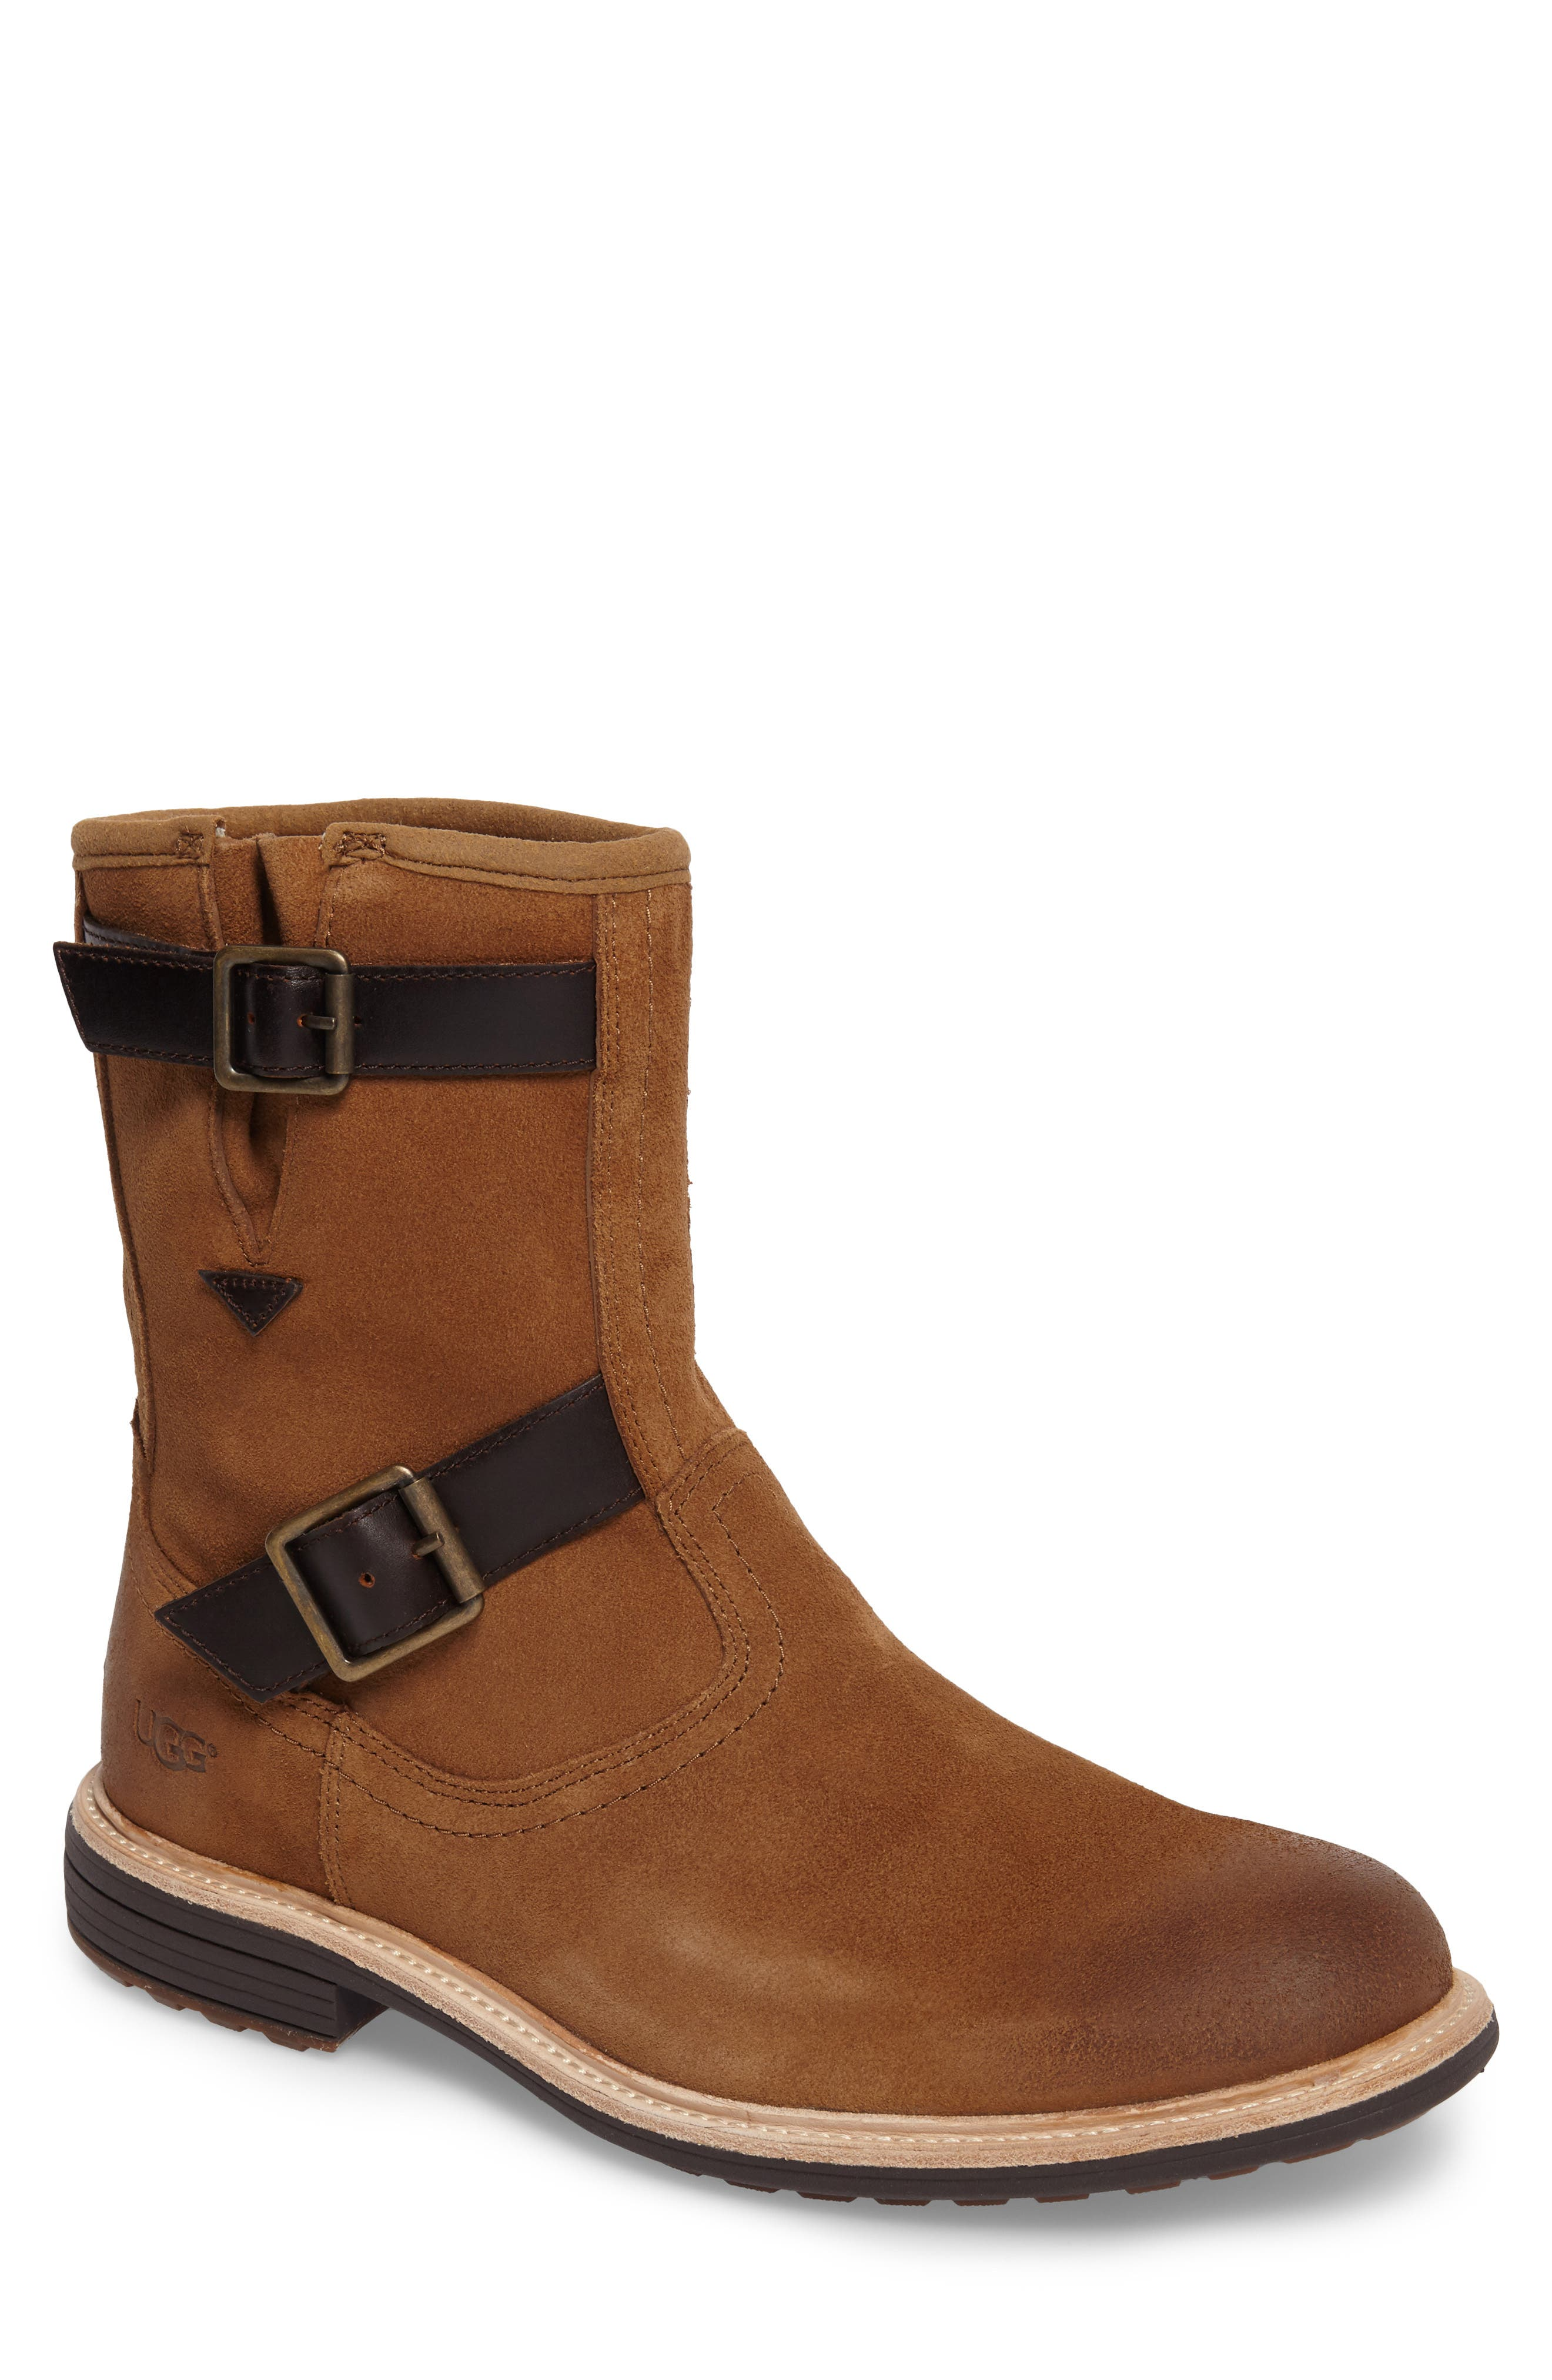 Jaren Zip Boot with Genuine Shearling,                         Main,                         color, Chestnut